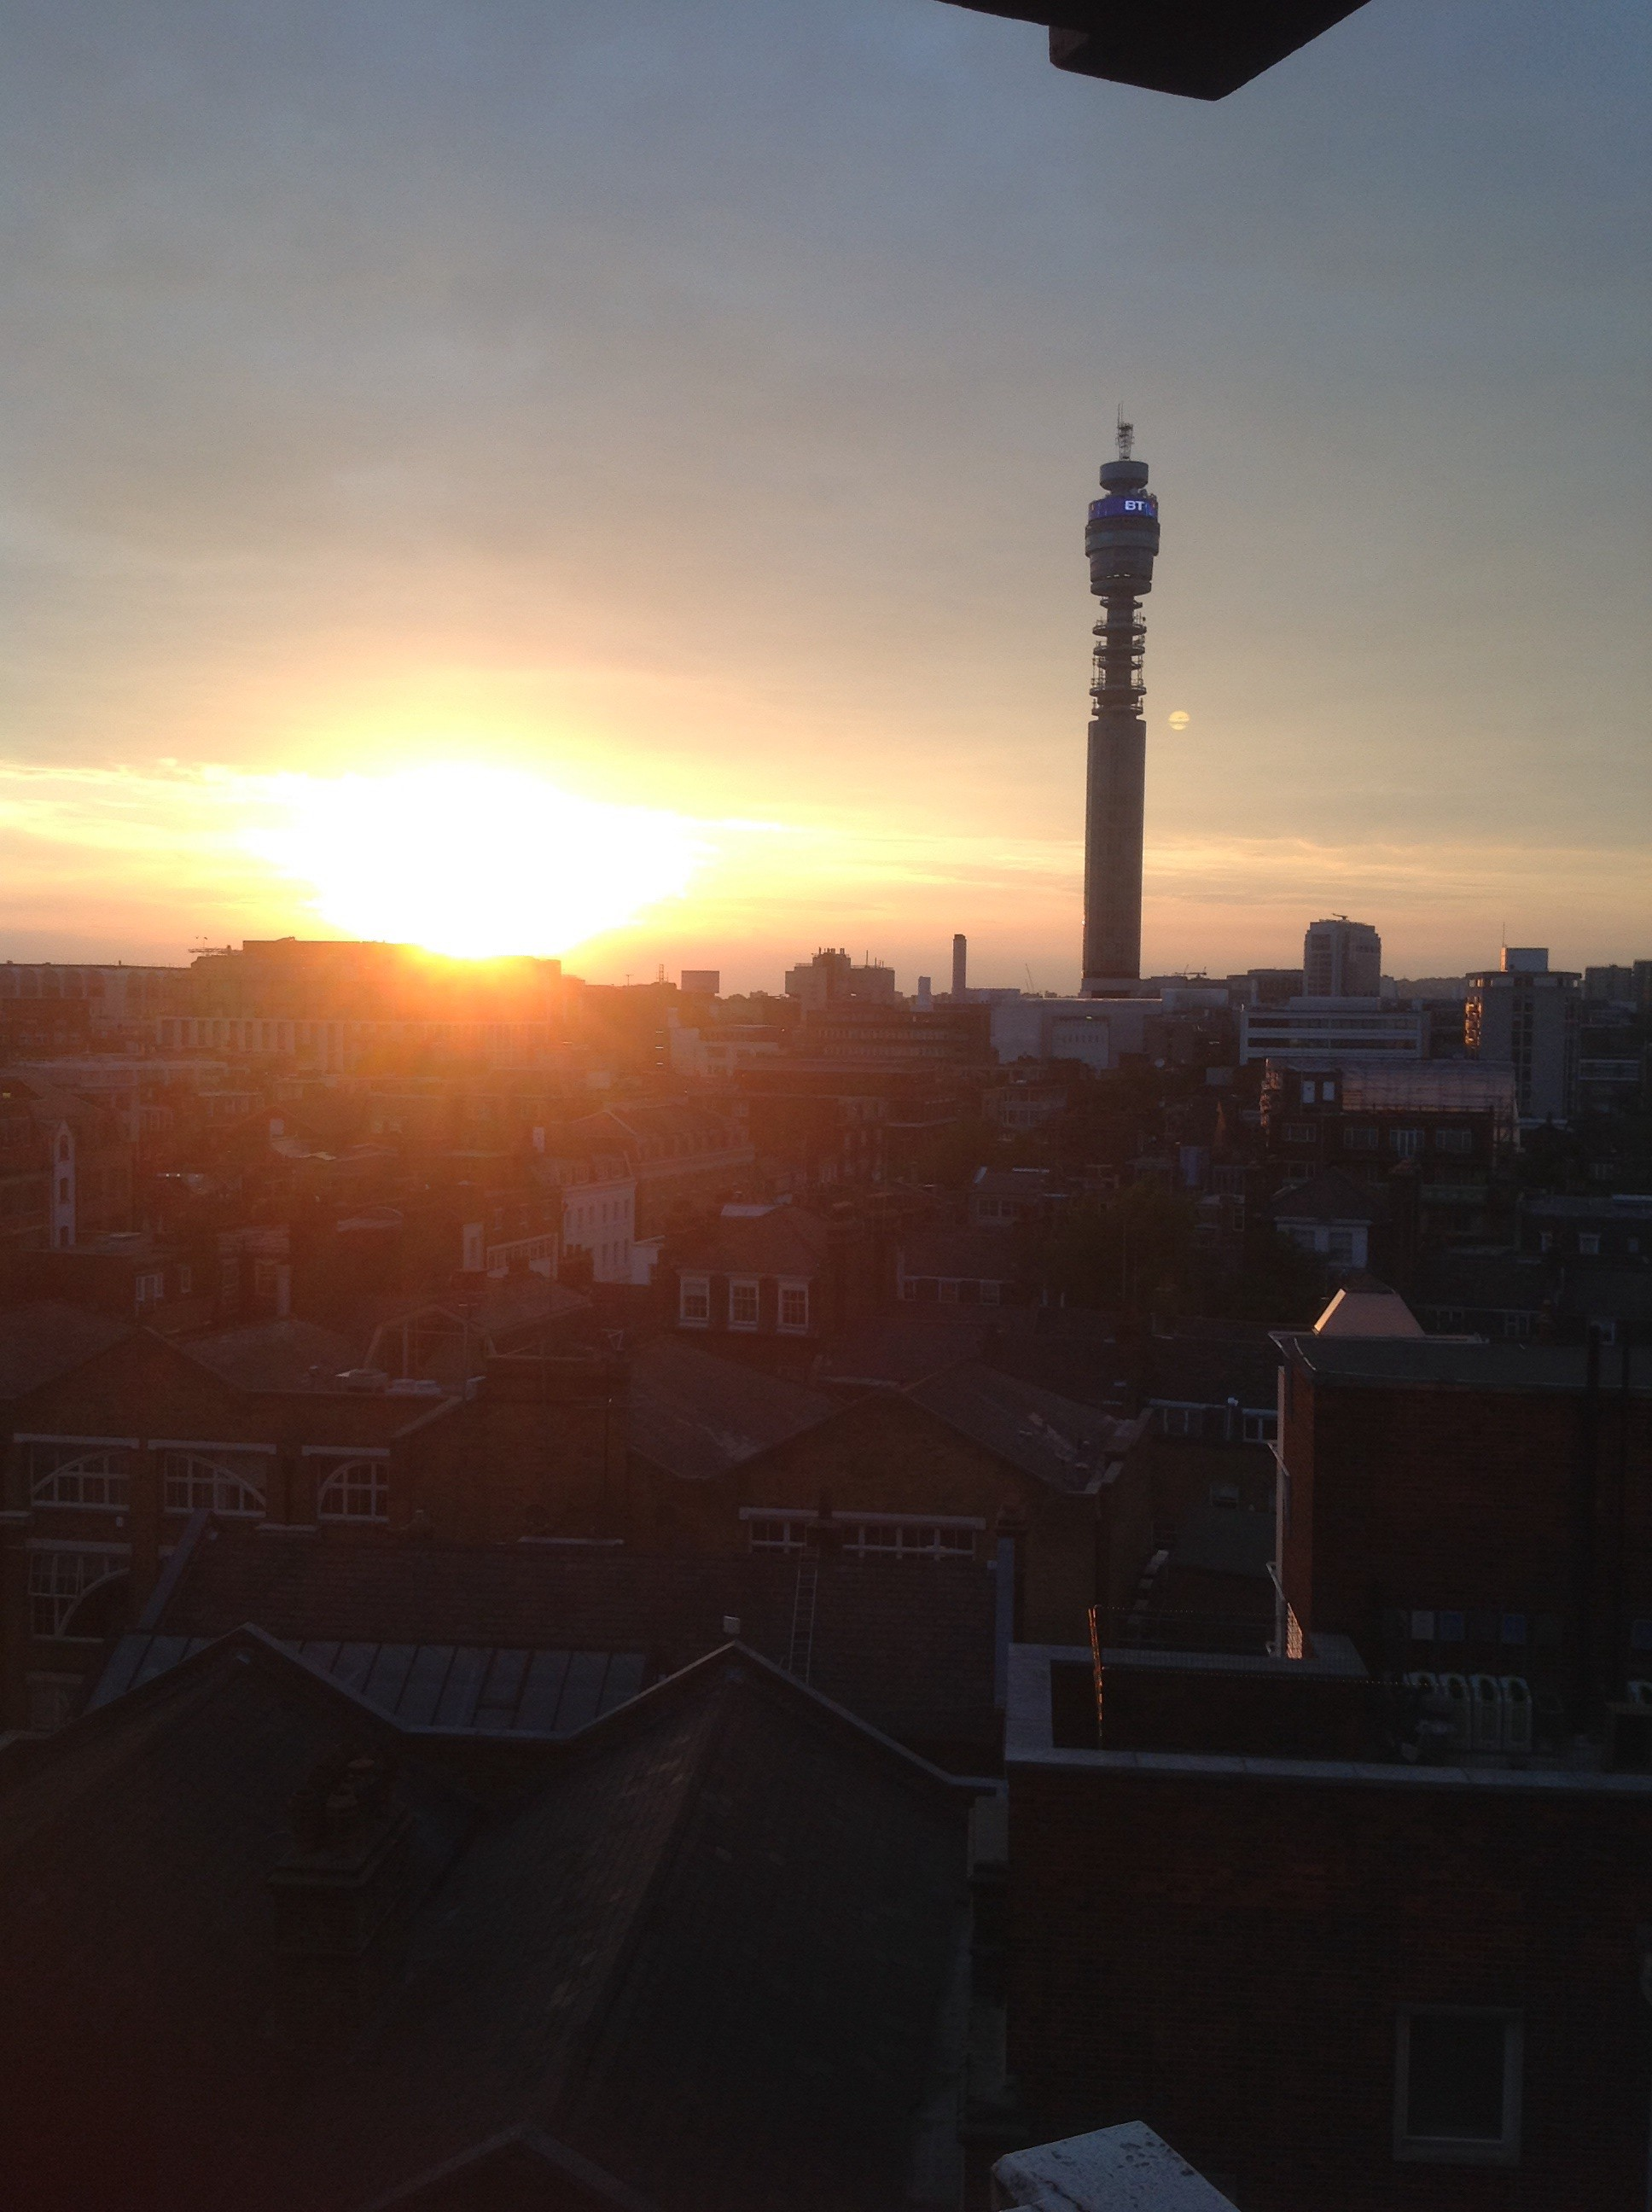 London sunset BT tower